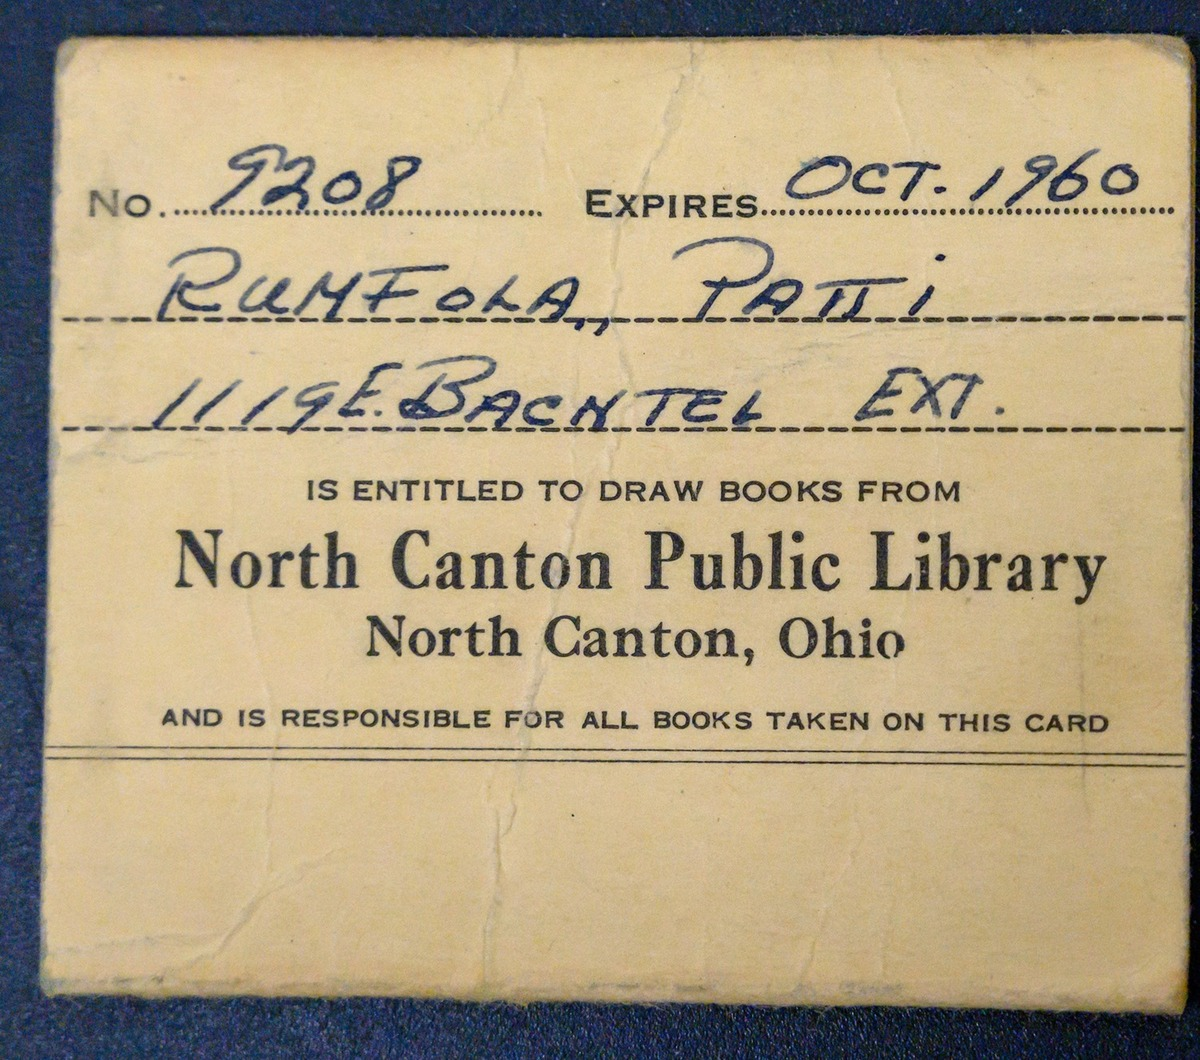 Patti's library card for north canton public library